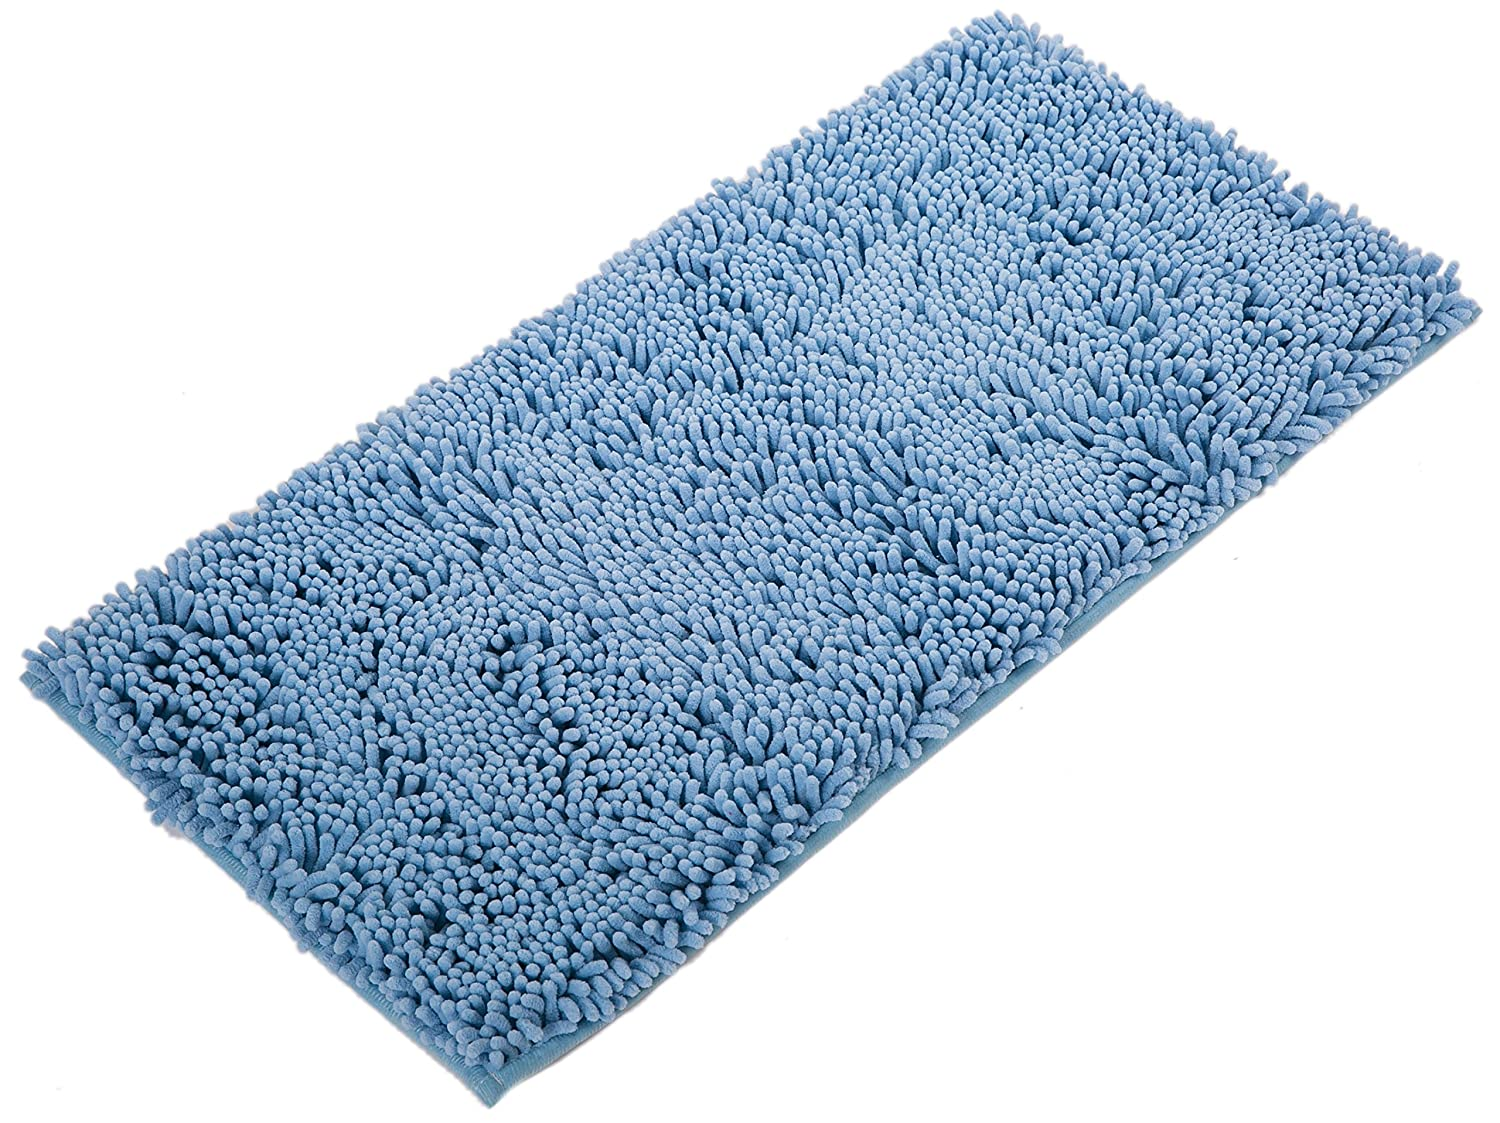 Bath Mat Non Slip Bath Rugs Absorbent Mat Chenille Fabric Soft Bathroom Carpet 82 x 40 CMS (Black) Airee Fairee